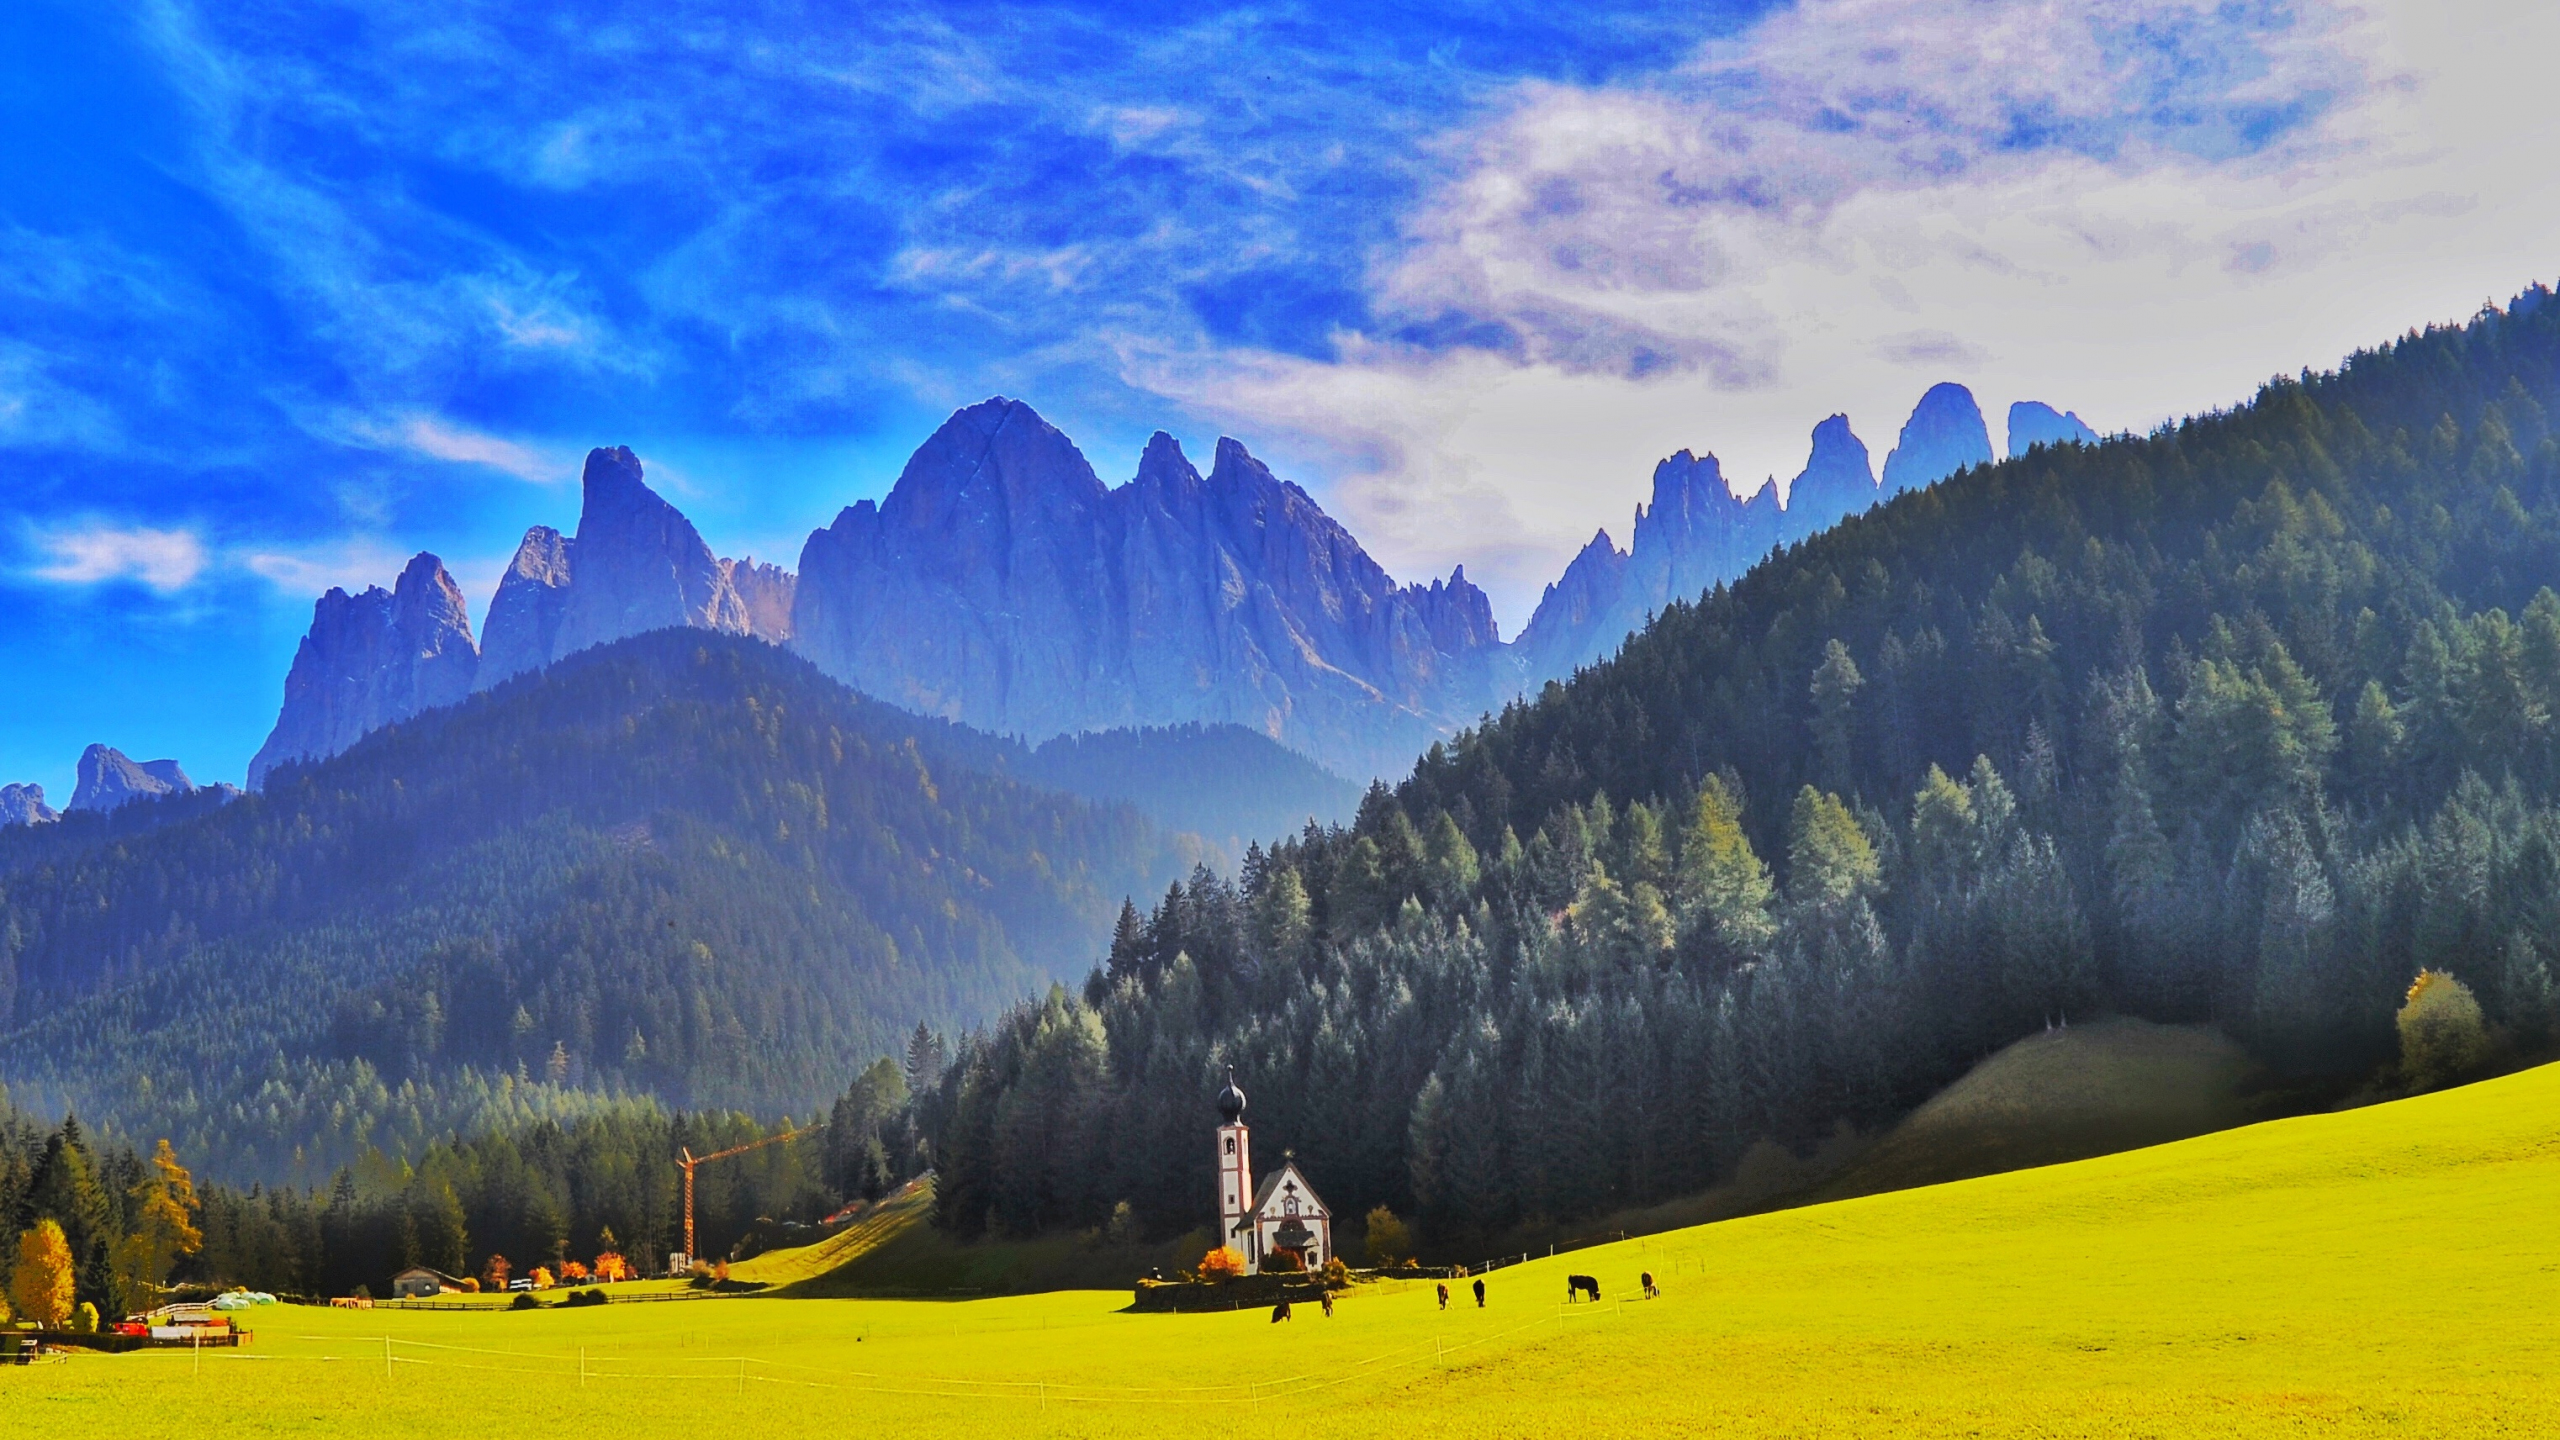 Download 2560x1440 Wallpaper Dolomites Italy Landscape Mountains Dual Wide Widescreen 16 9 Widescreen 2560x1440 Hd Image Background 796